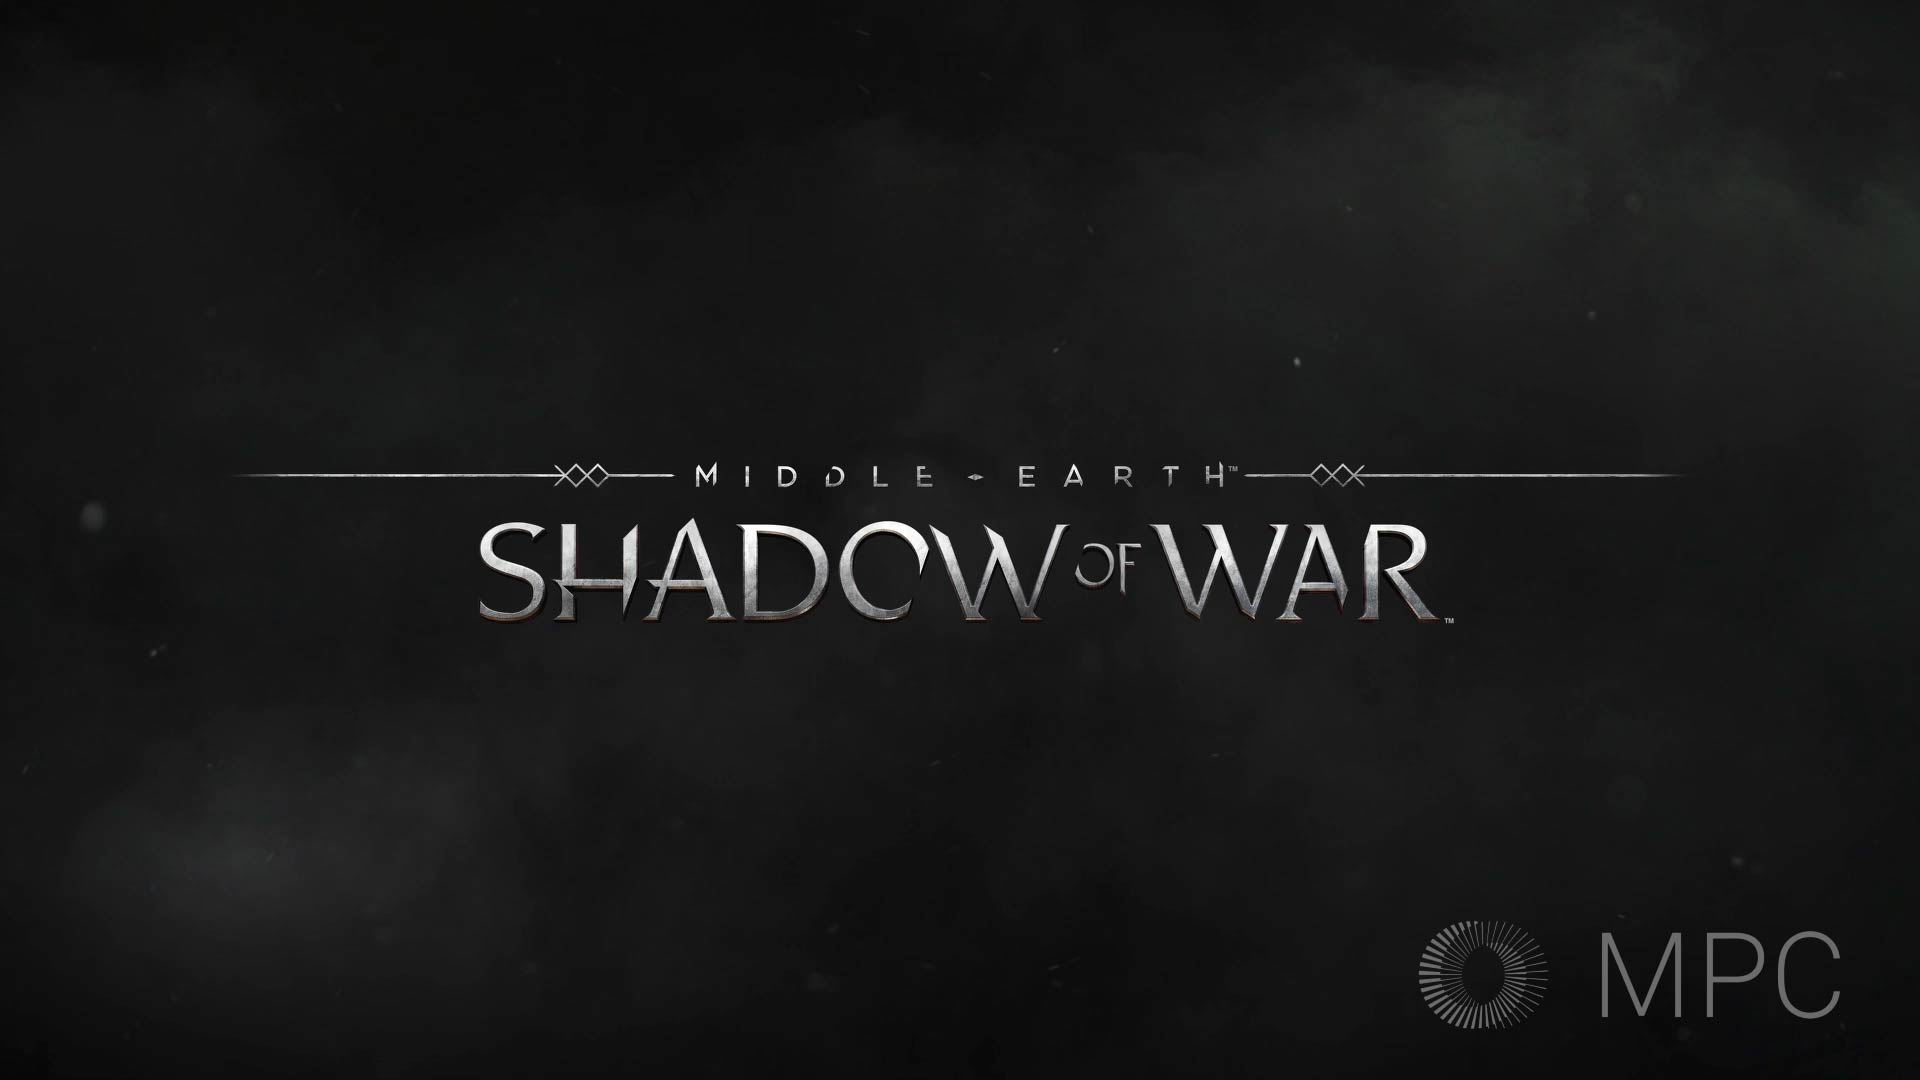 SHADOW OF WAR_TRAILER_05.jpg